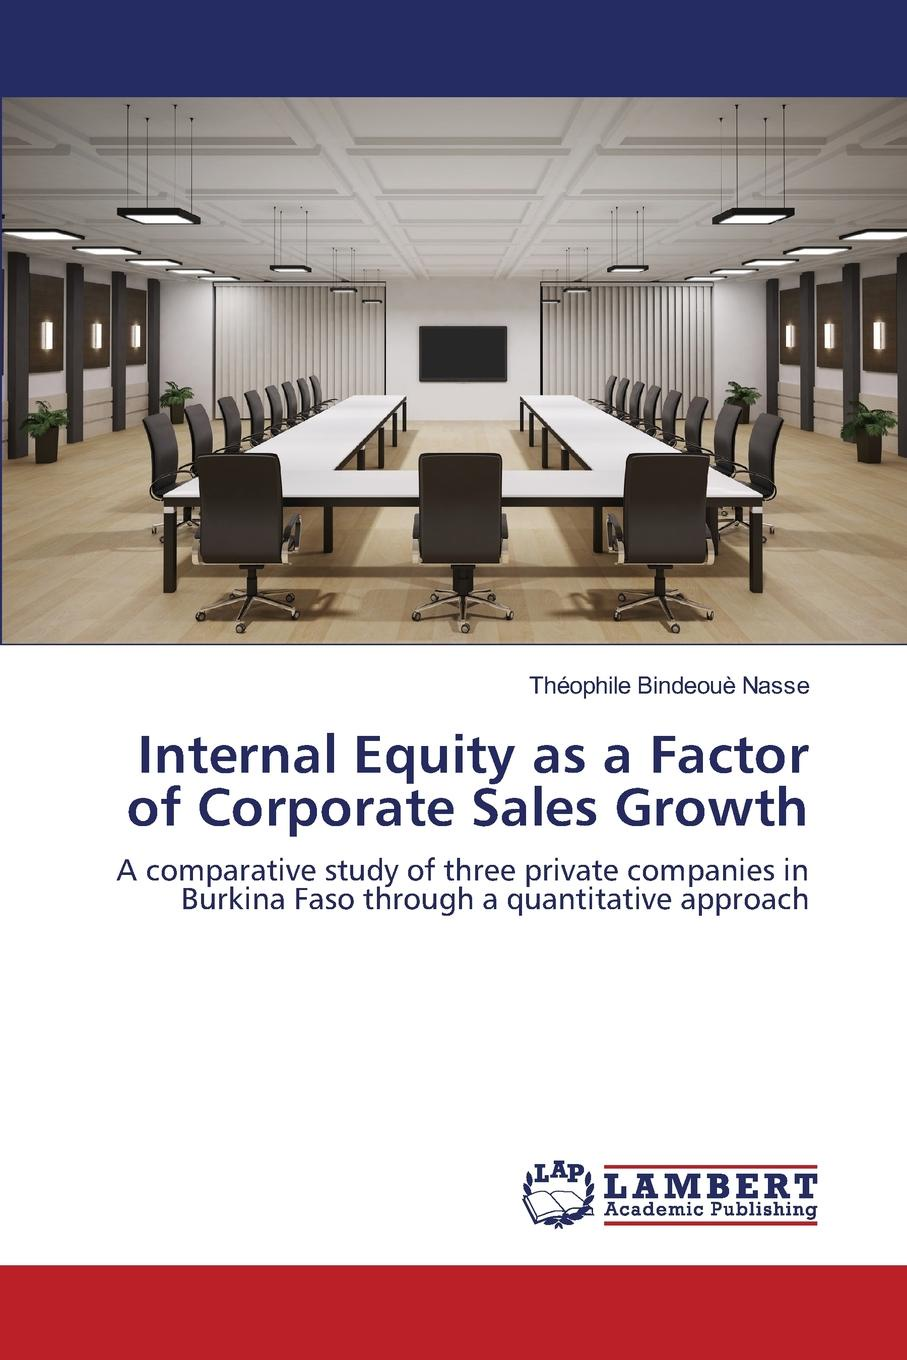 Internal Equity as a Factor of Corporate Sales Growth The concept of internal equity in Customer Relationship Management...